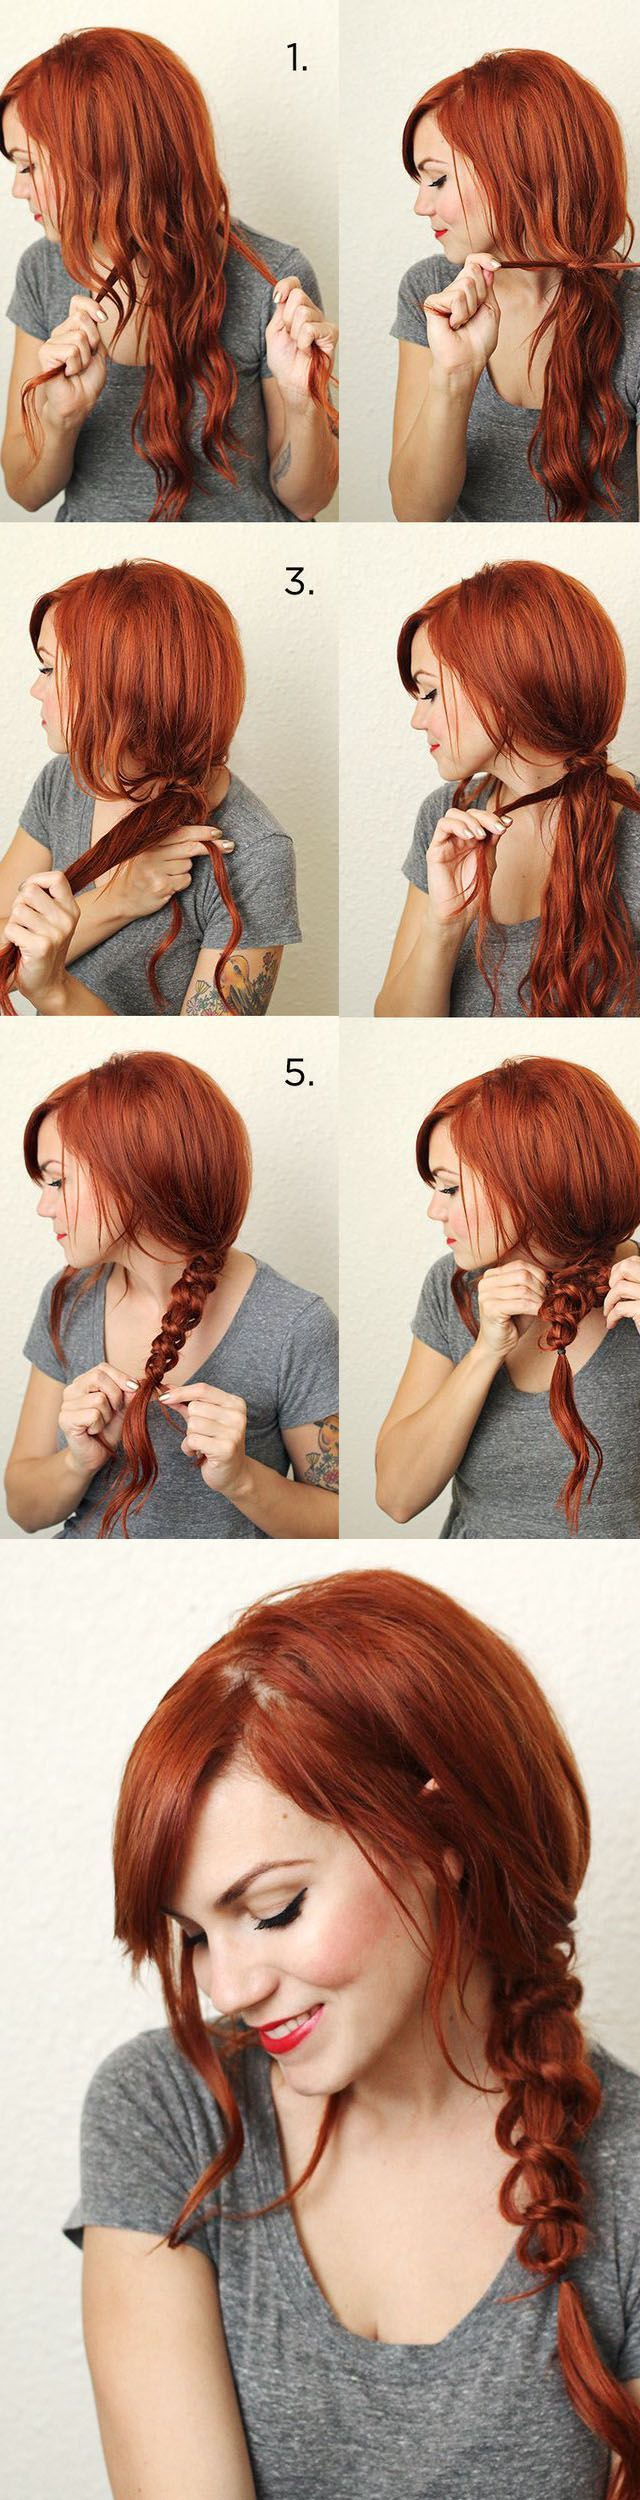 5 30 Messy Braid Hairstyles That You Will Love